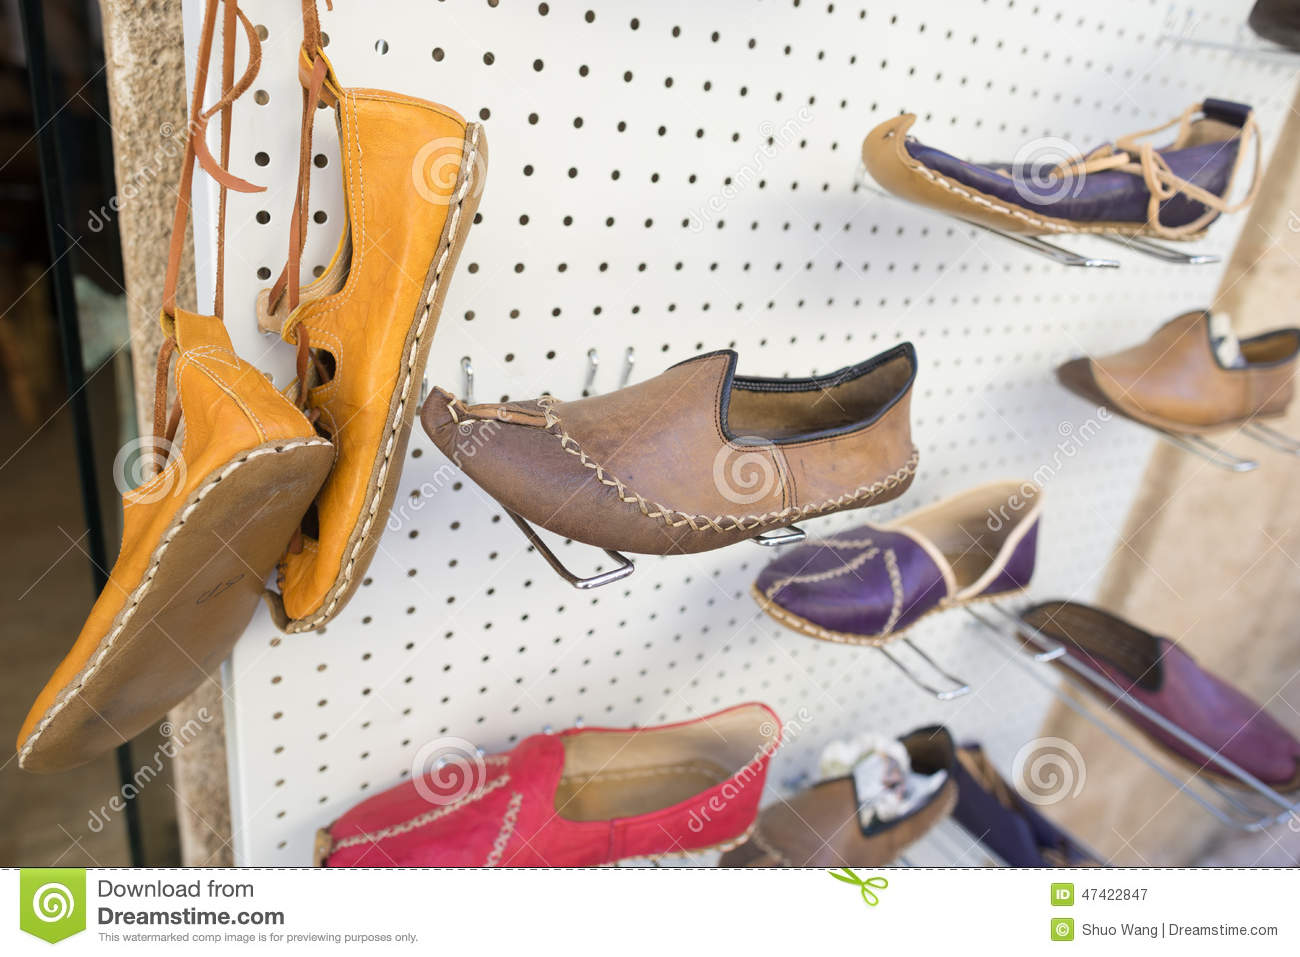 horse shoe muslim girl personals Press to search craigslist save search options close for sale  favorite this post jul 30 bostonian strada mens woven leather shoe brown 8 $49 (brookline) .